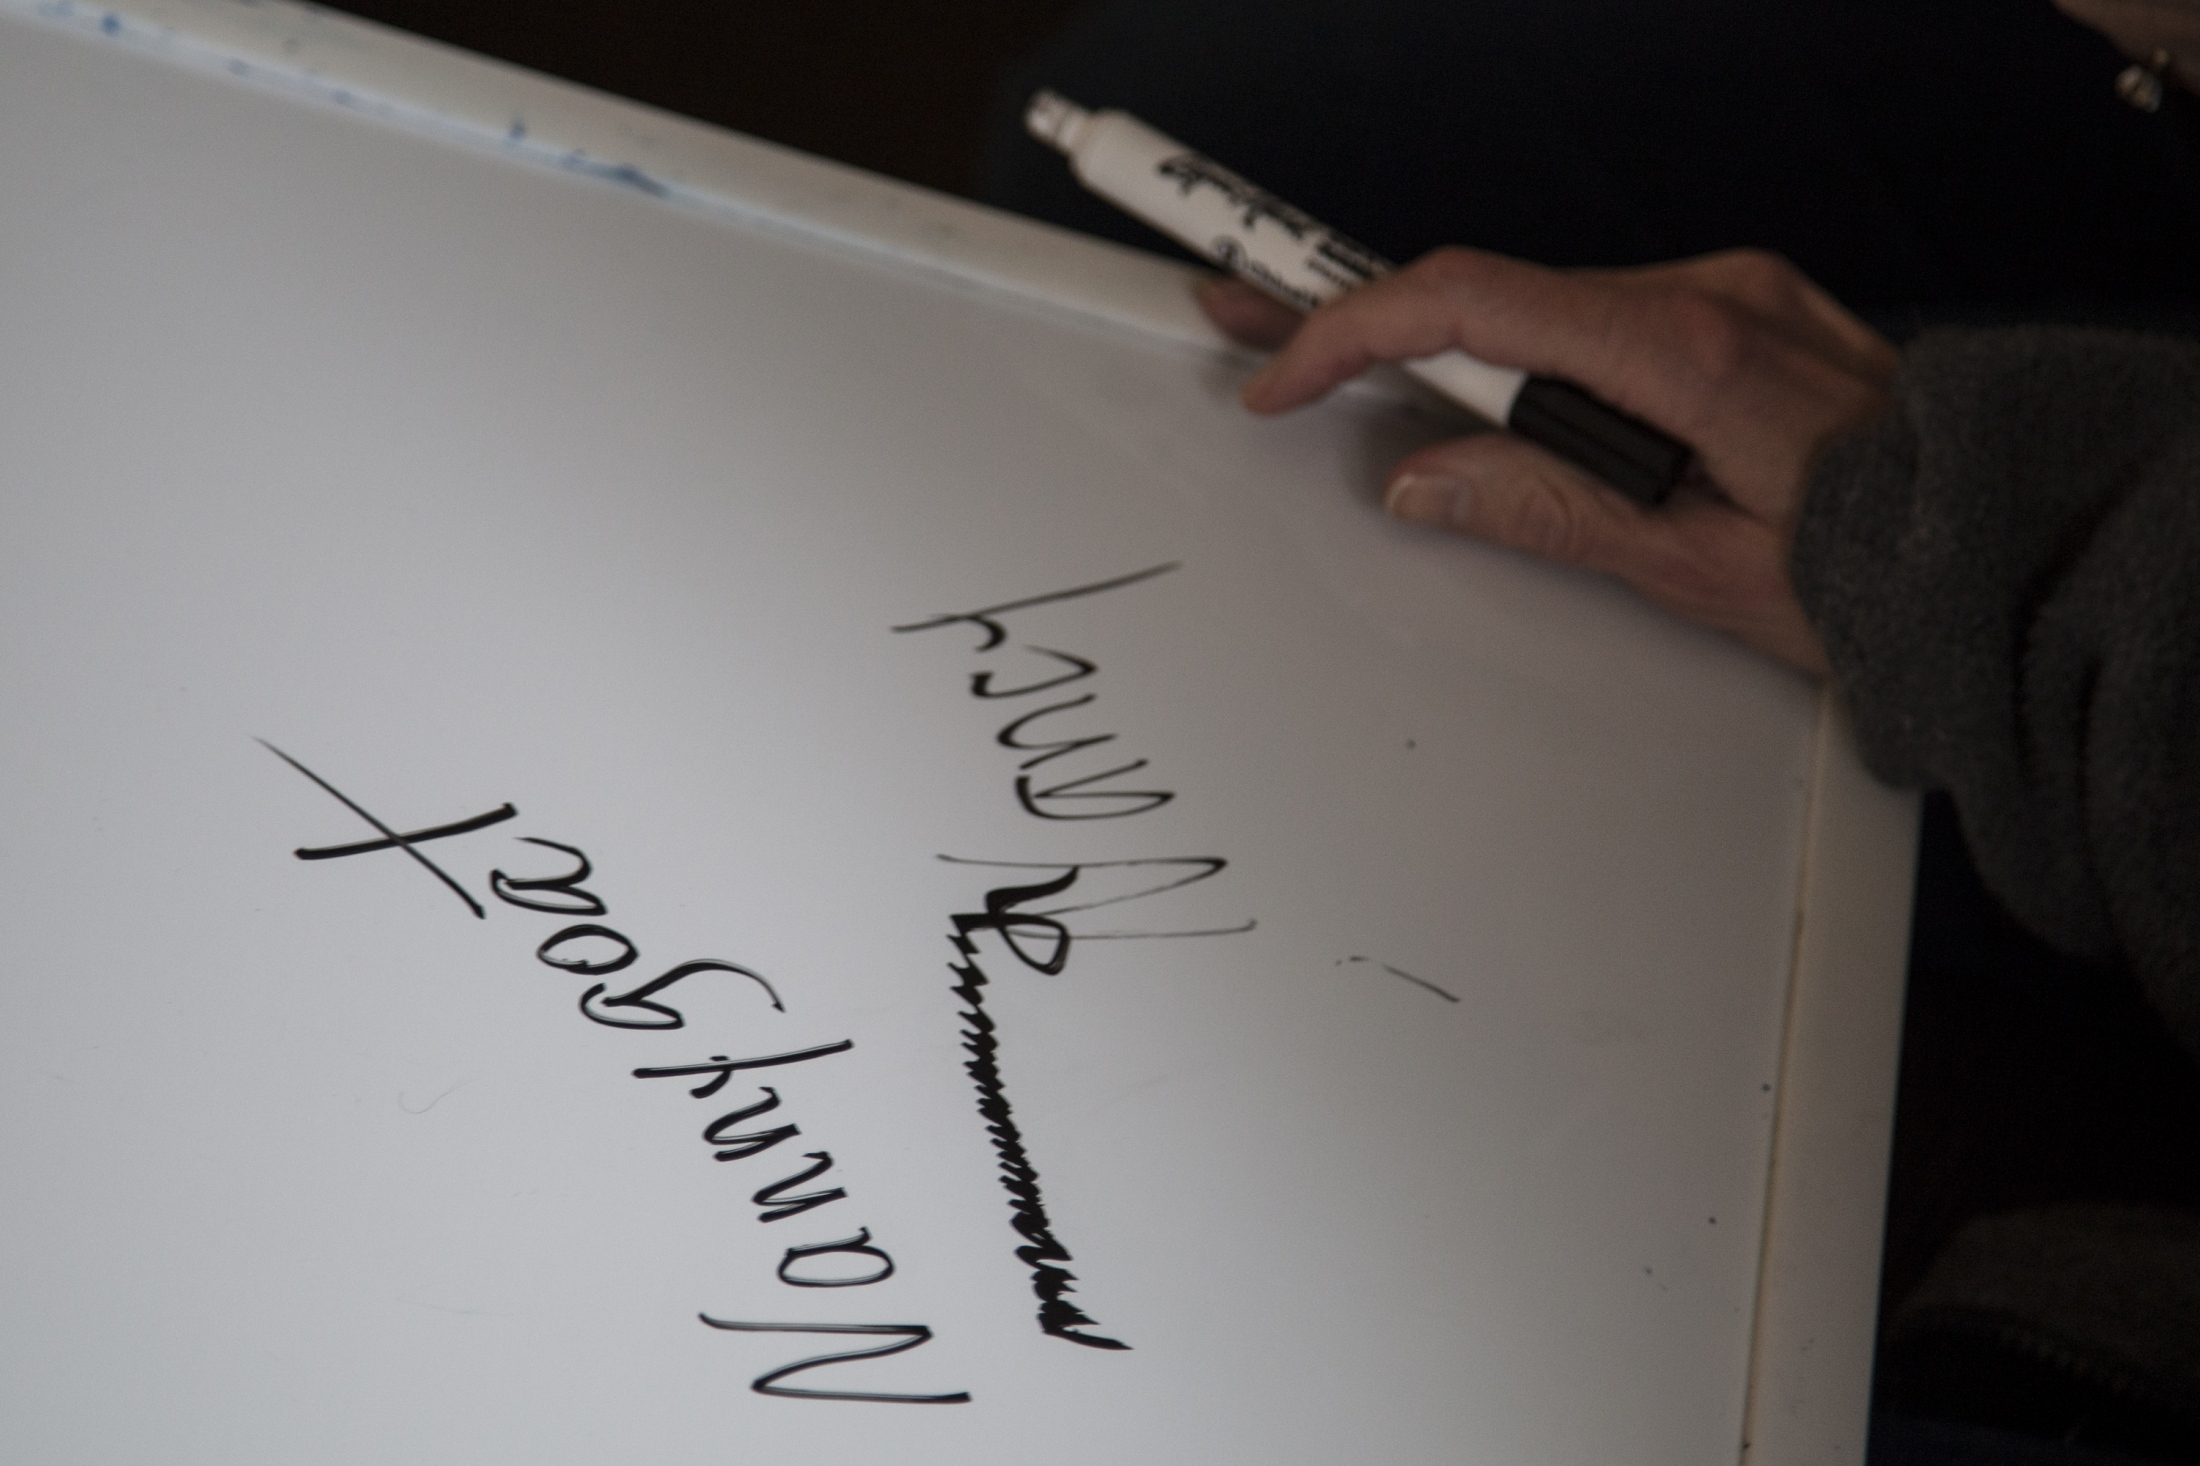 """Nancy's nickname """"Nannygoat"""" is written out on a dry erase board that hangs in her room. Below is how Nancy wrote her name when her sister Cindy asked her to spell it out."""